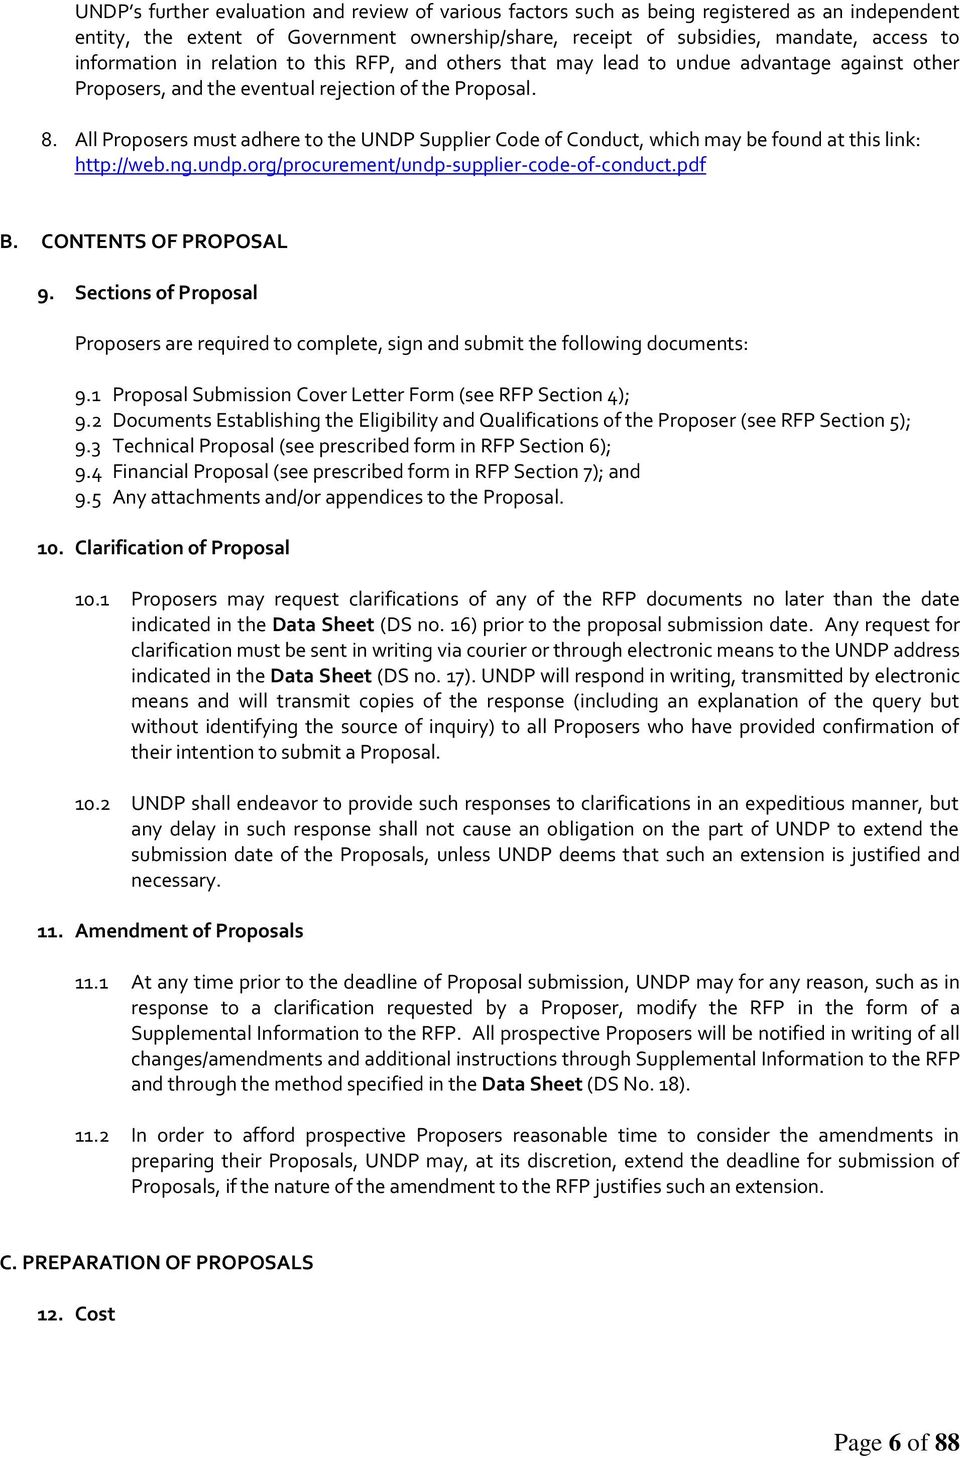 All Proposers must adhere to the UNDP Supplier Code of Conduct, which may be found at this link: http://web.ng.undp.org/procurement/undp-supplier-code-of-conduct.pdf B. CONTENTS OF PROPOSAL 9.